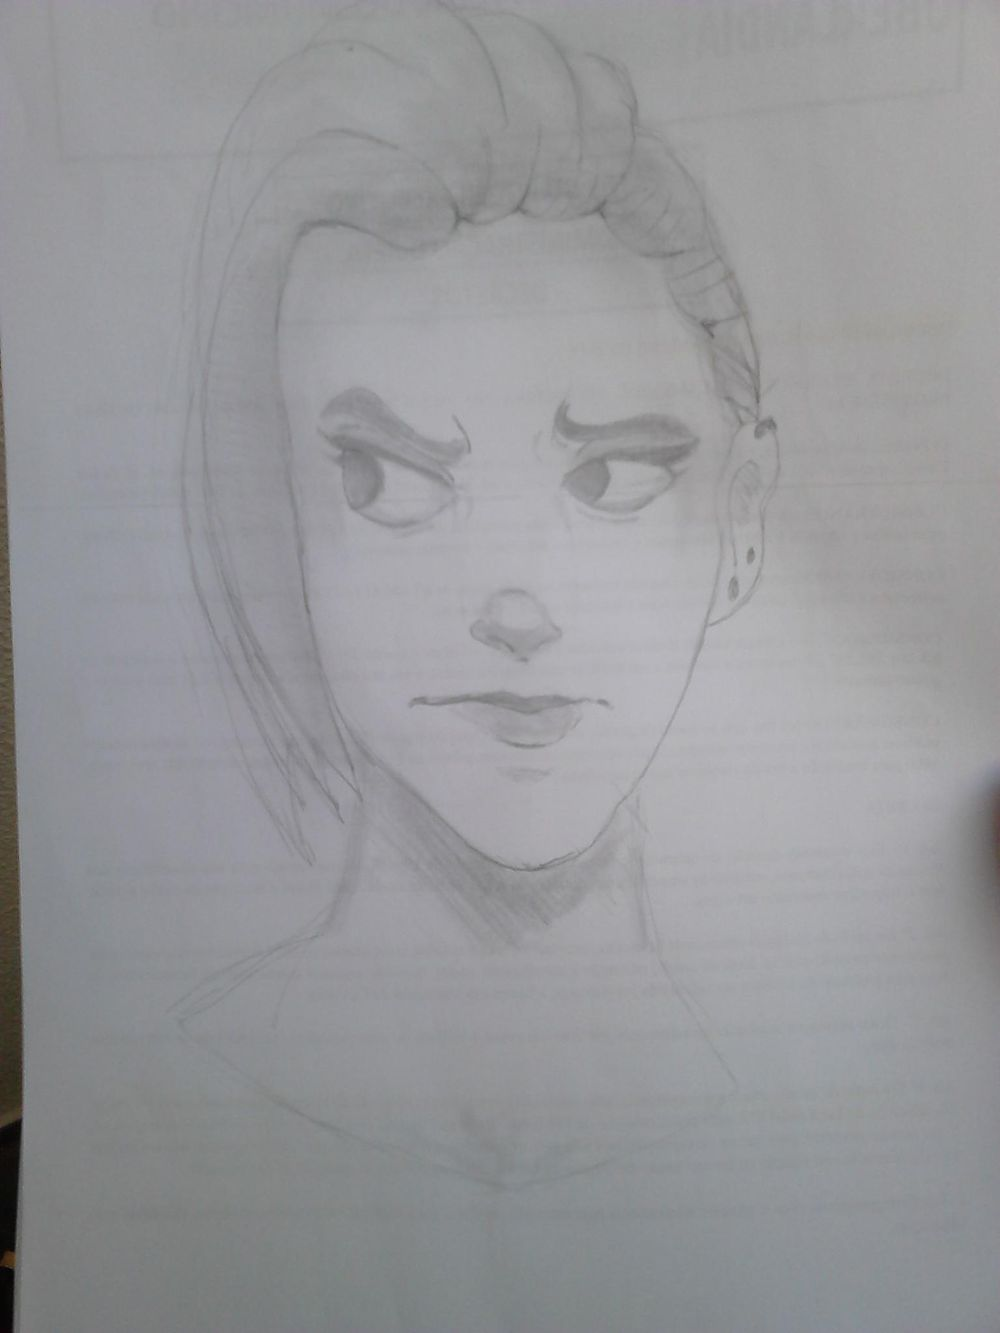 Some female character - image 5 - student project